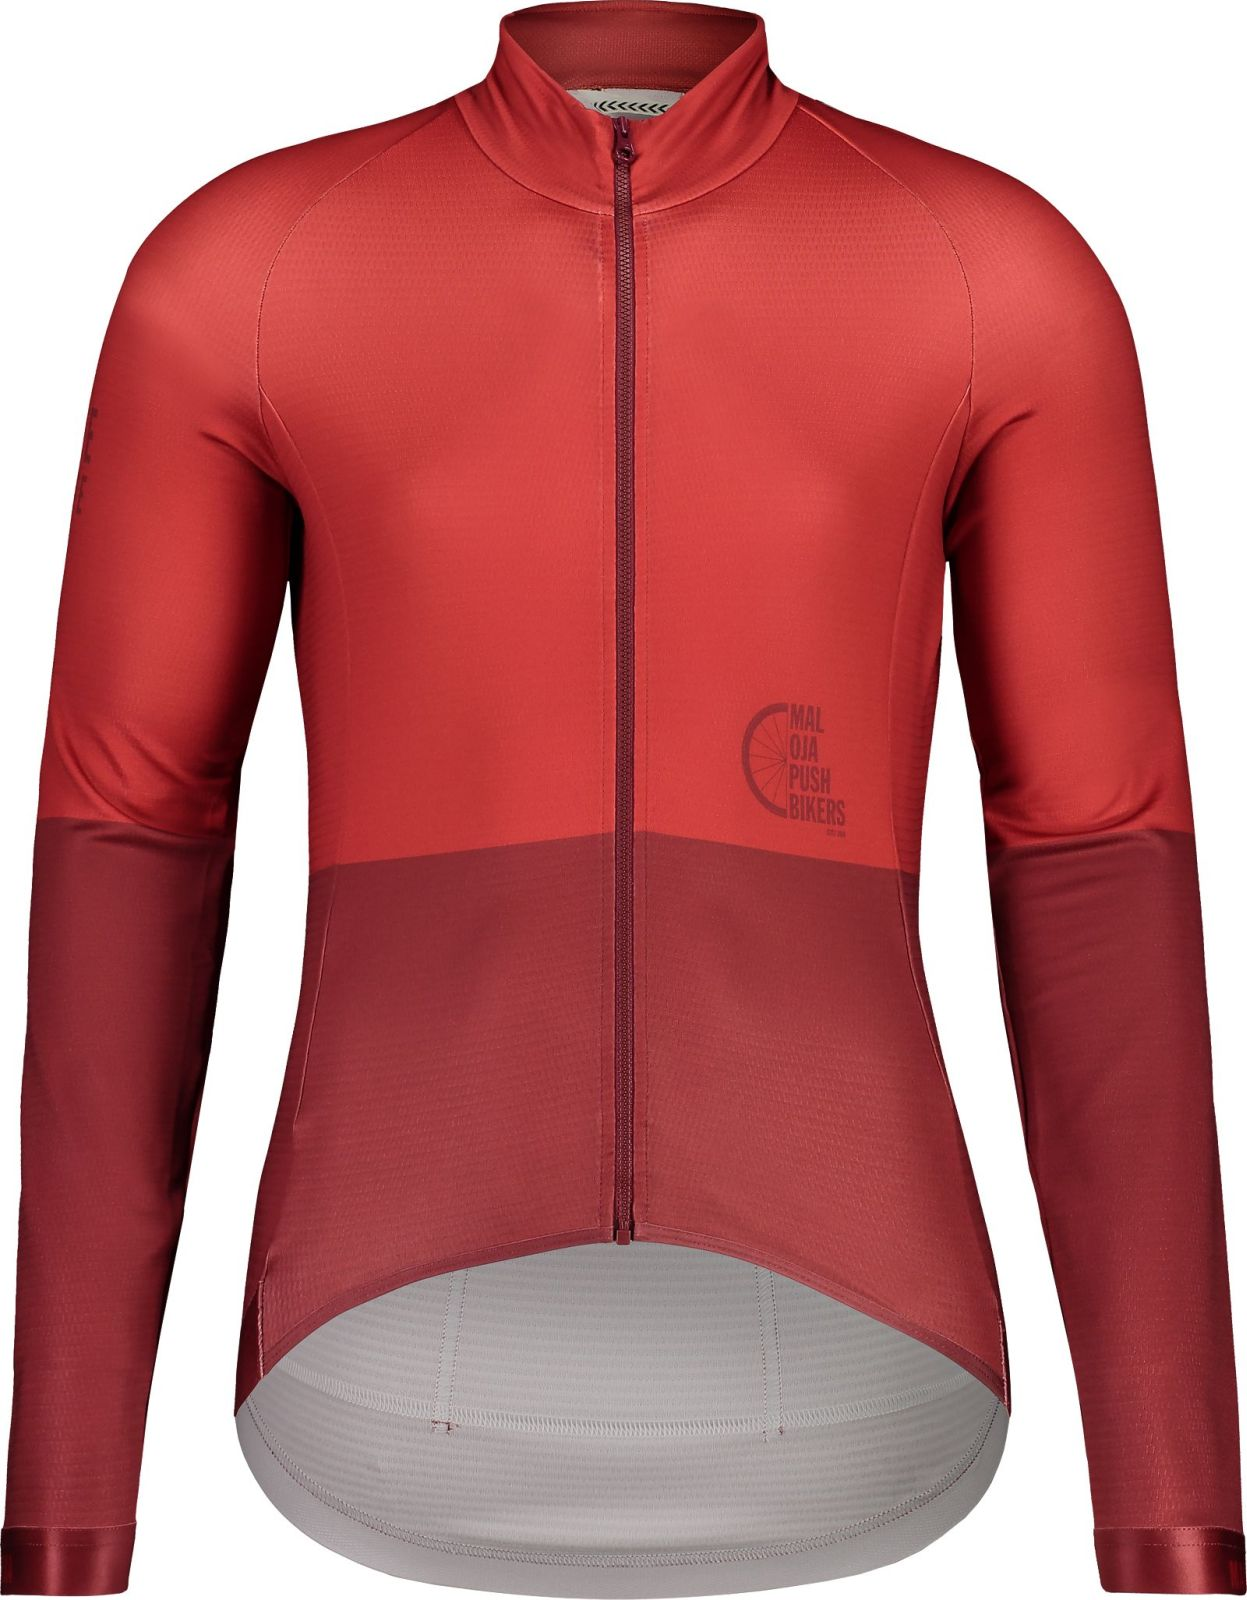 Maloja PushbikersM. 1/1 - red monk L